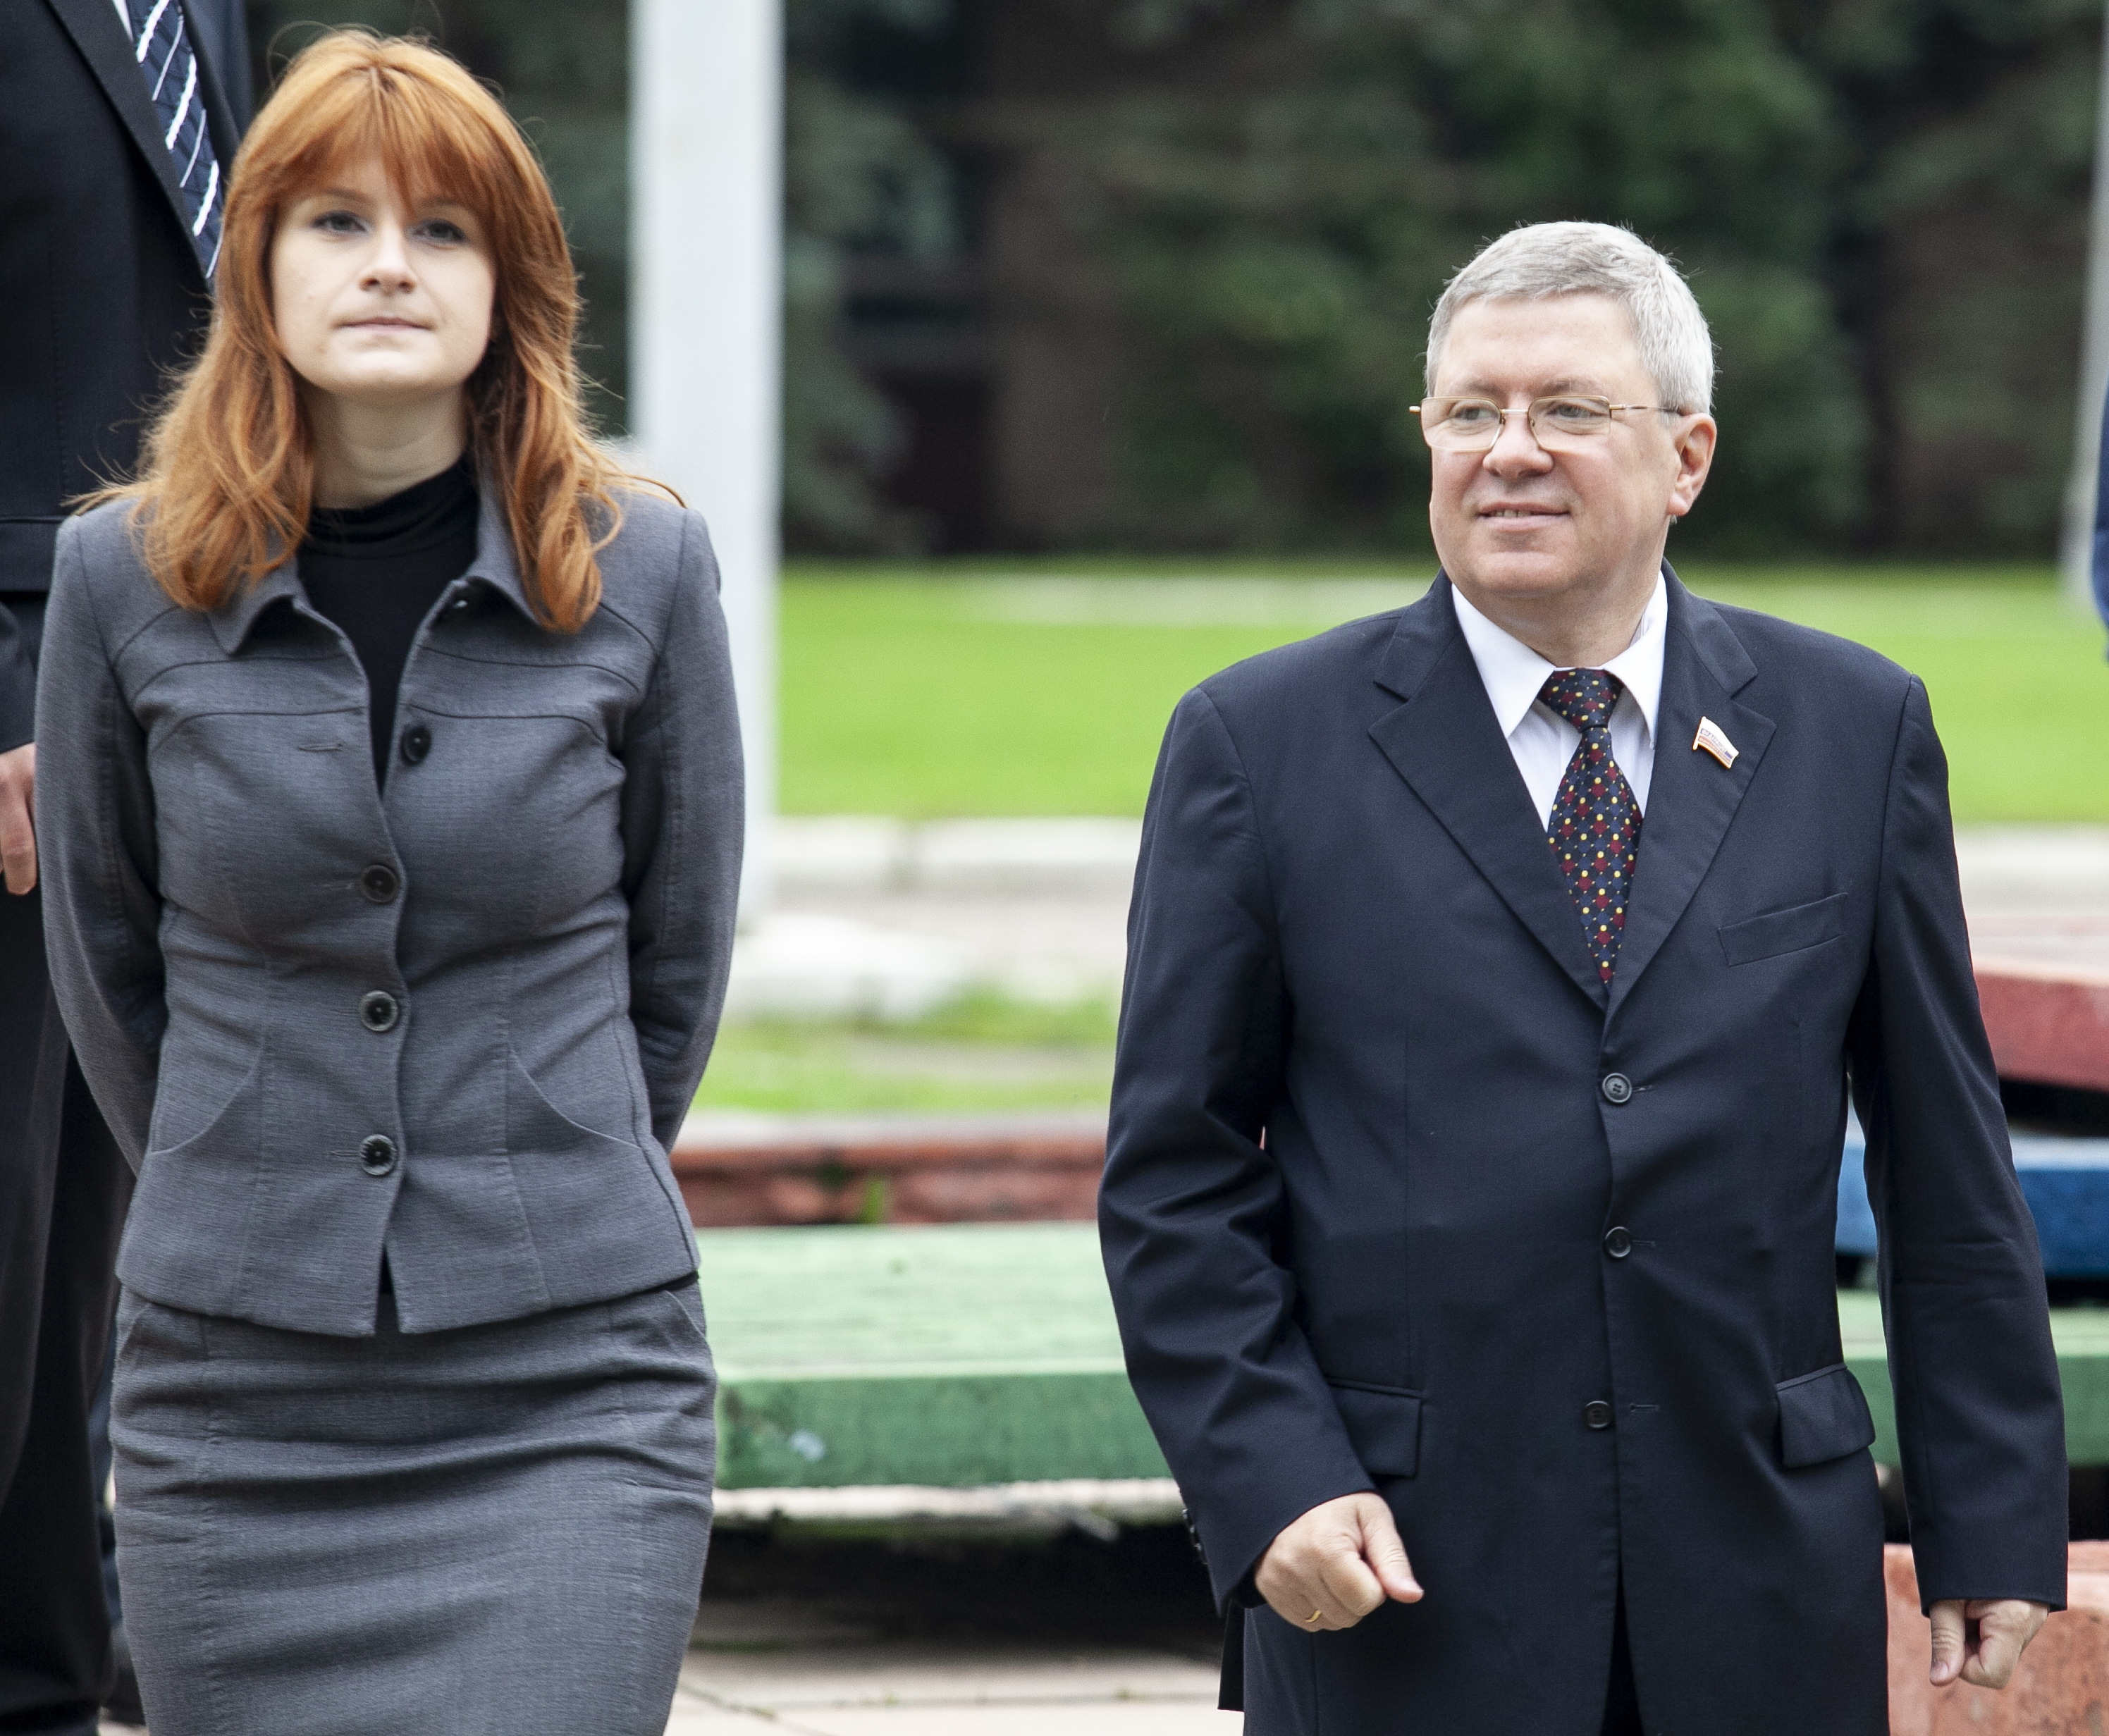 Maria Butina walks with Alexander Torshin then a member of the Russian upper house of parliament in Moscow, Russia, Sept. 7, 2012.